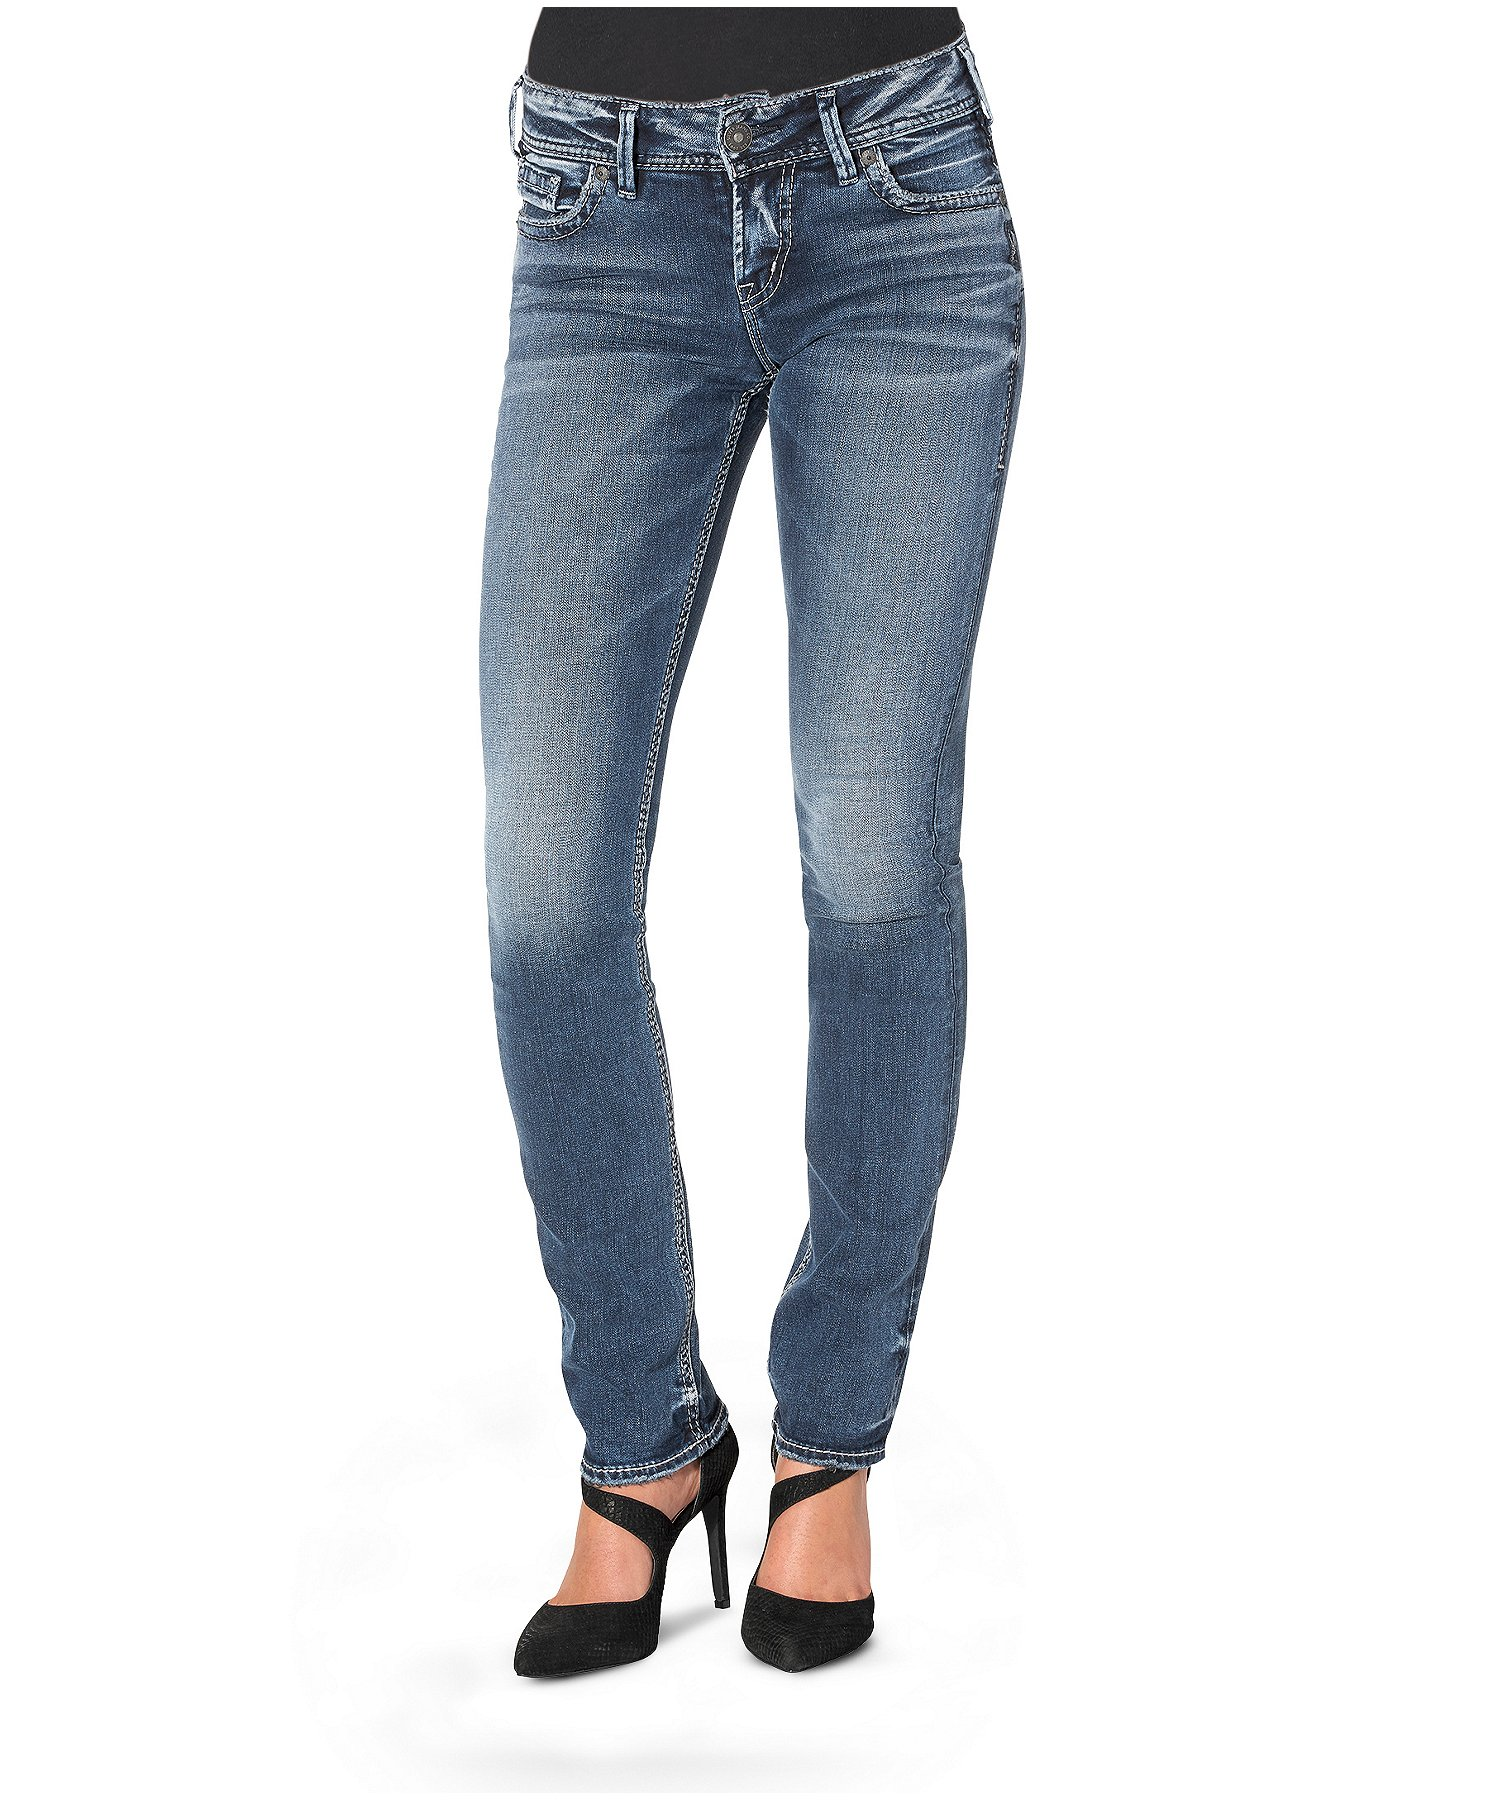 Silver Jeans Co Womens Elyse Relaxed Fit Mid Rise Straight Leg